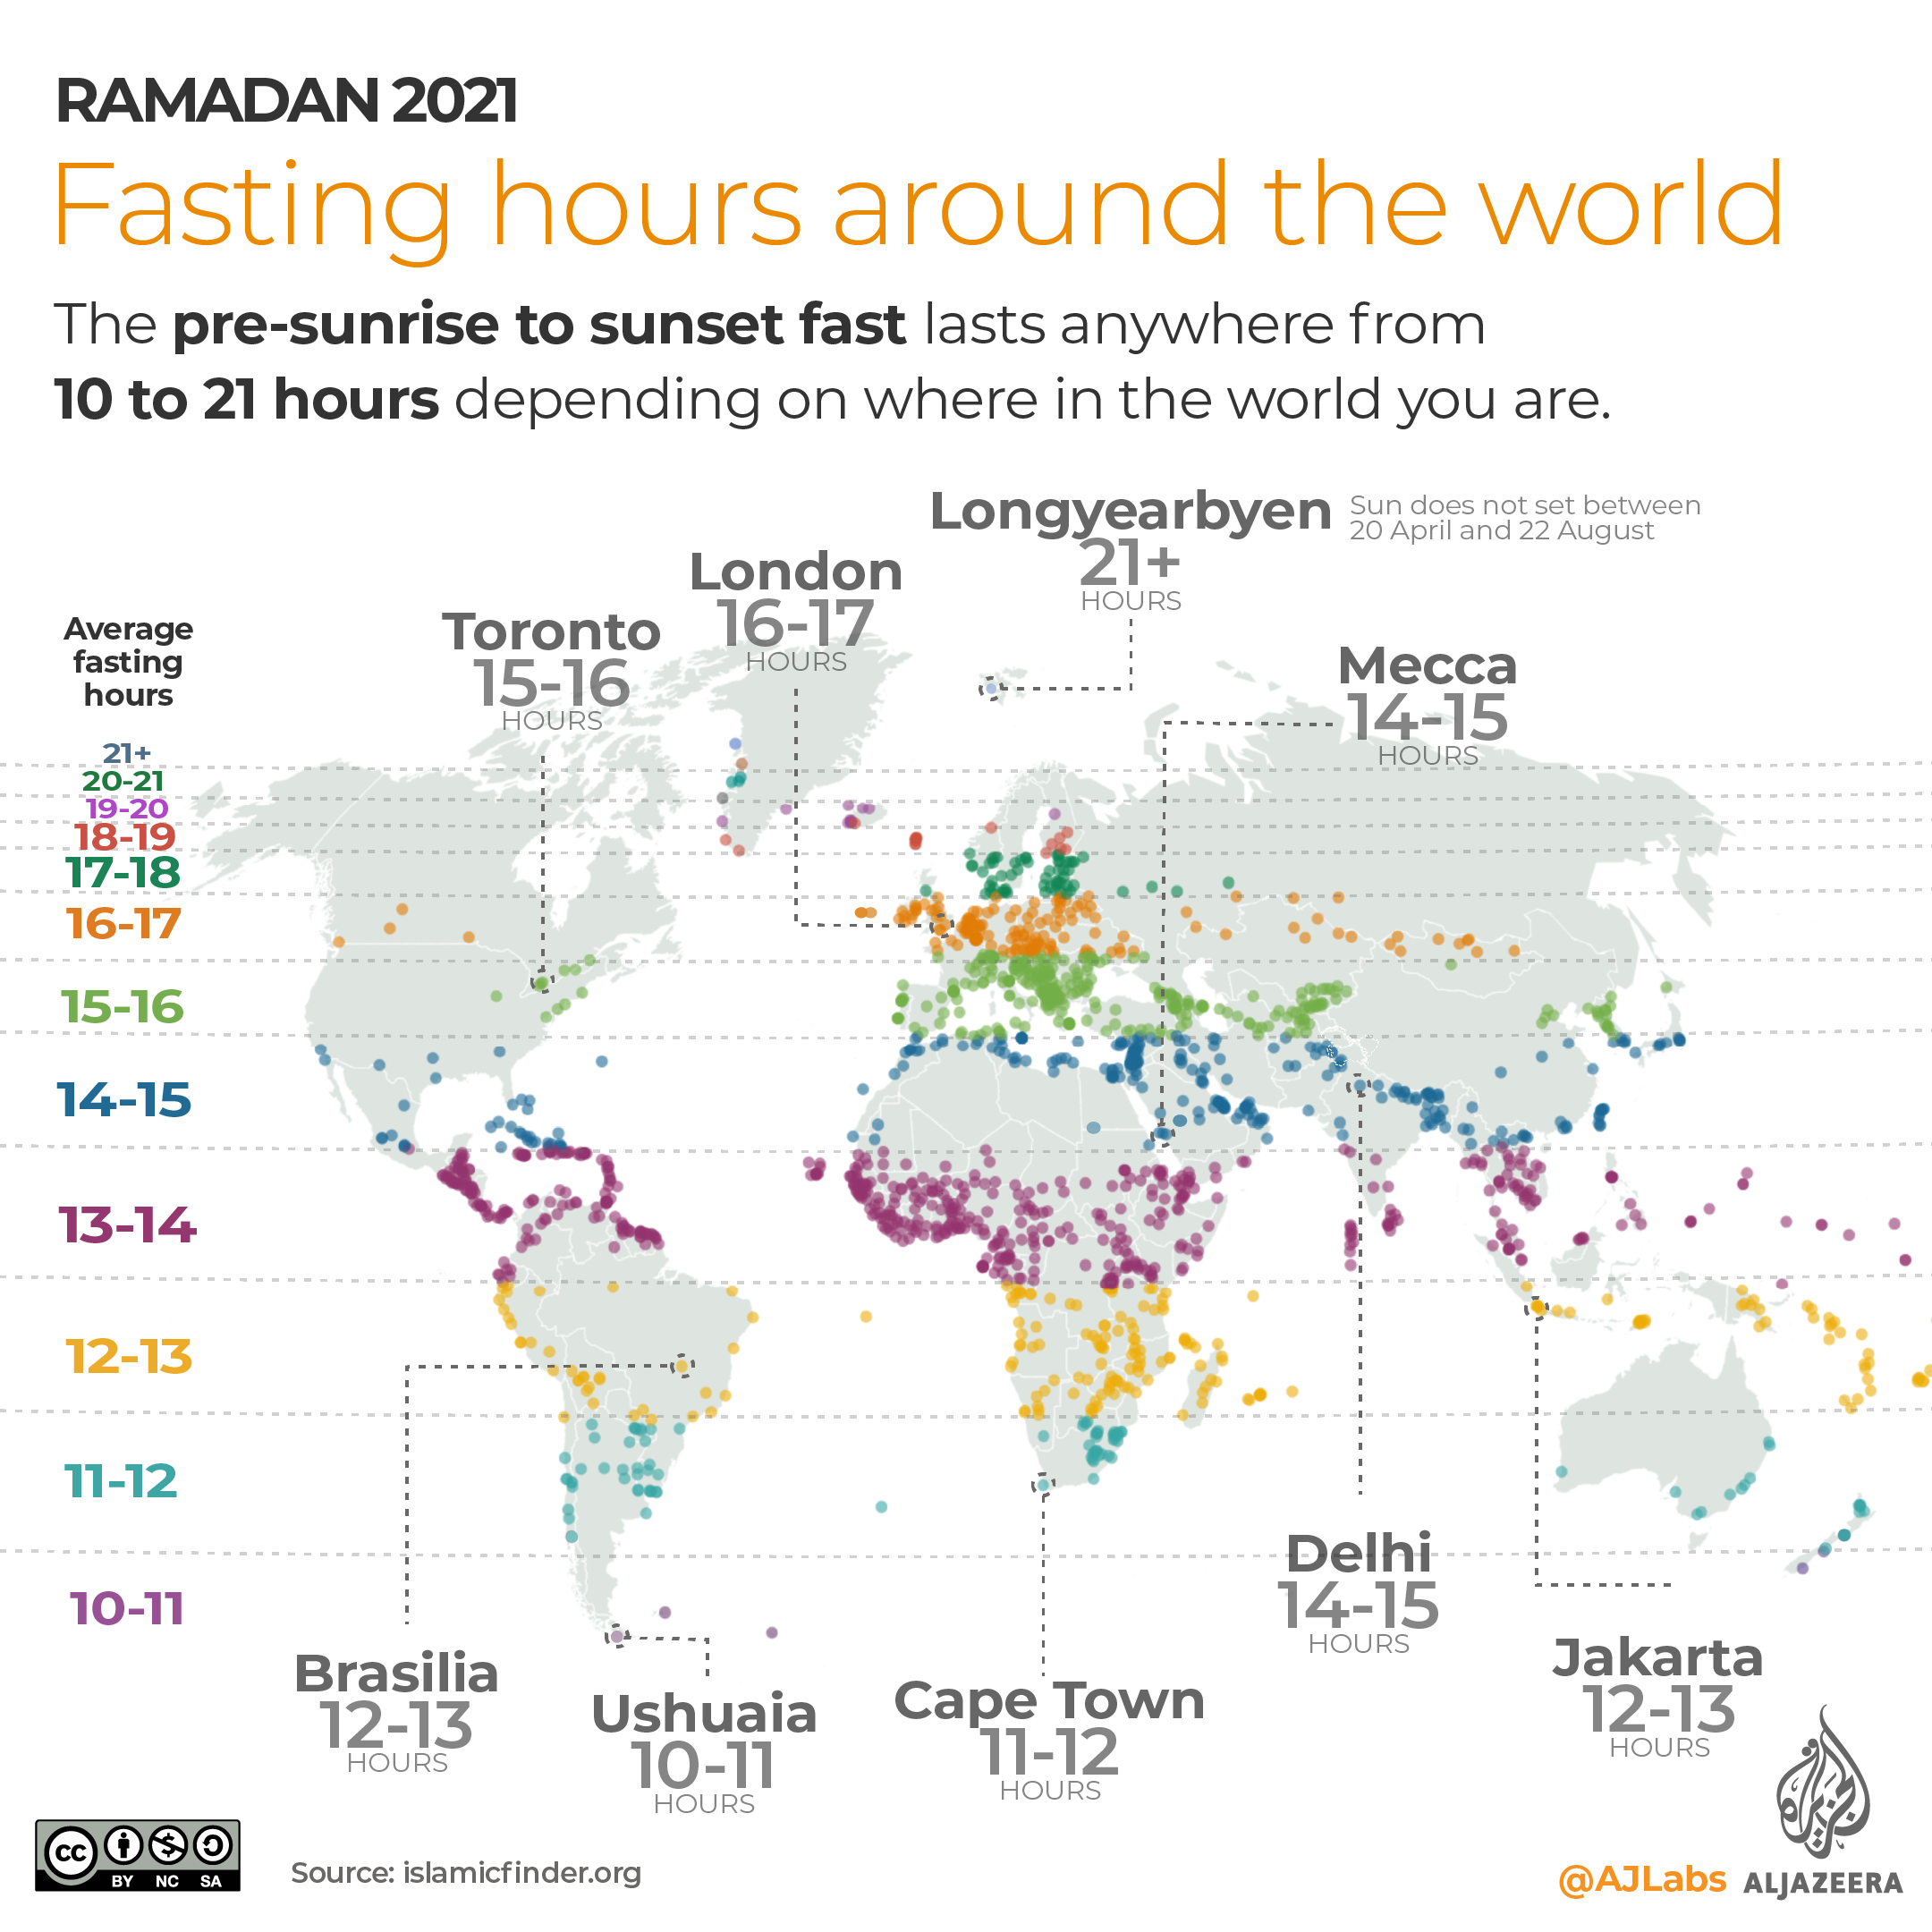 INTERACTIVE-Ramadan2021-fasting-hours.png